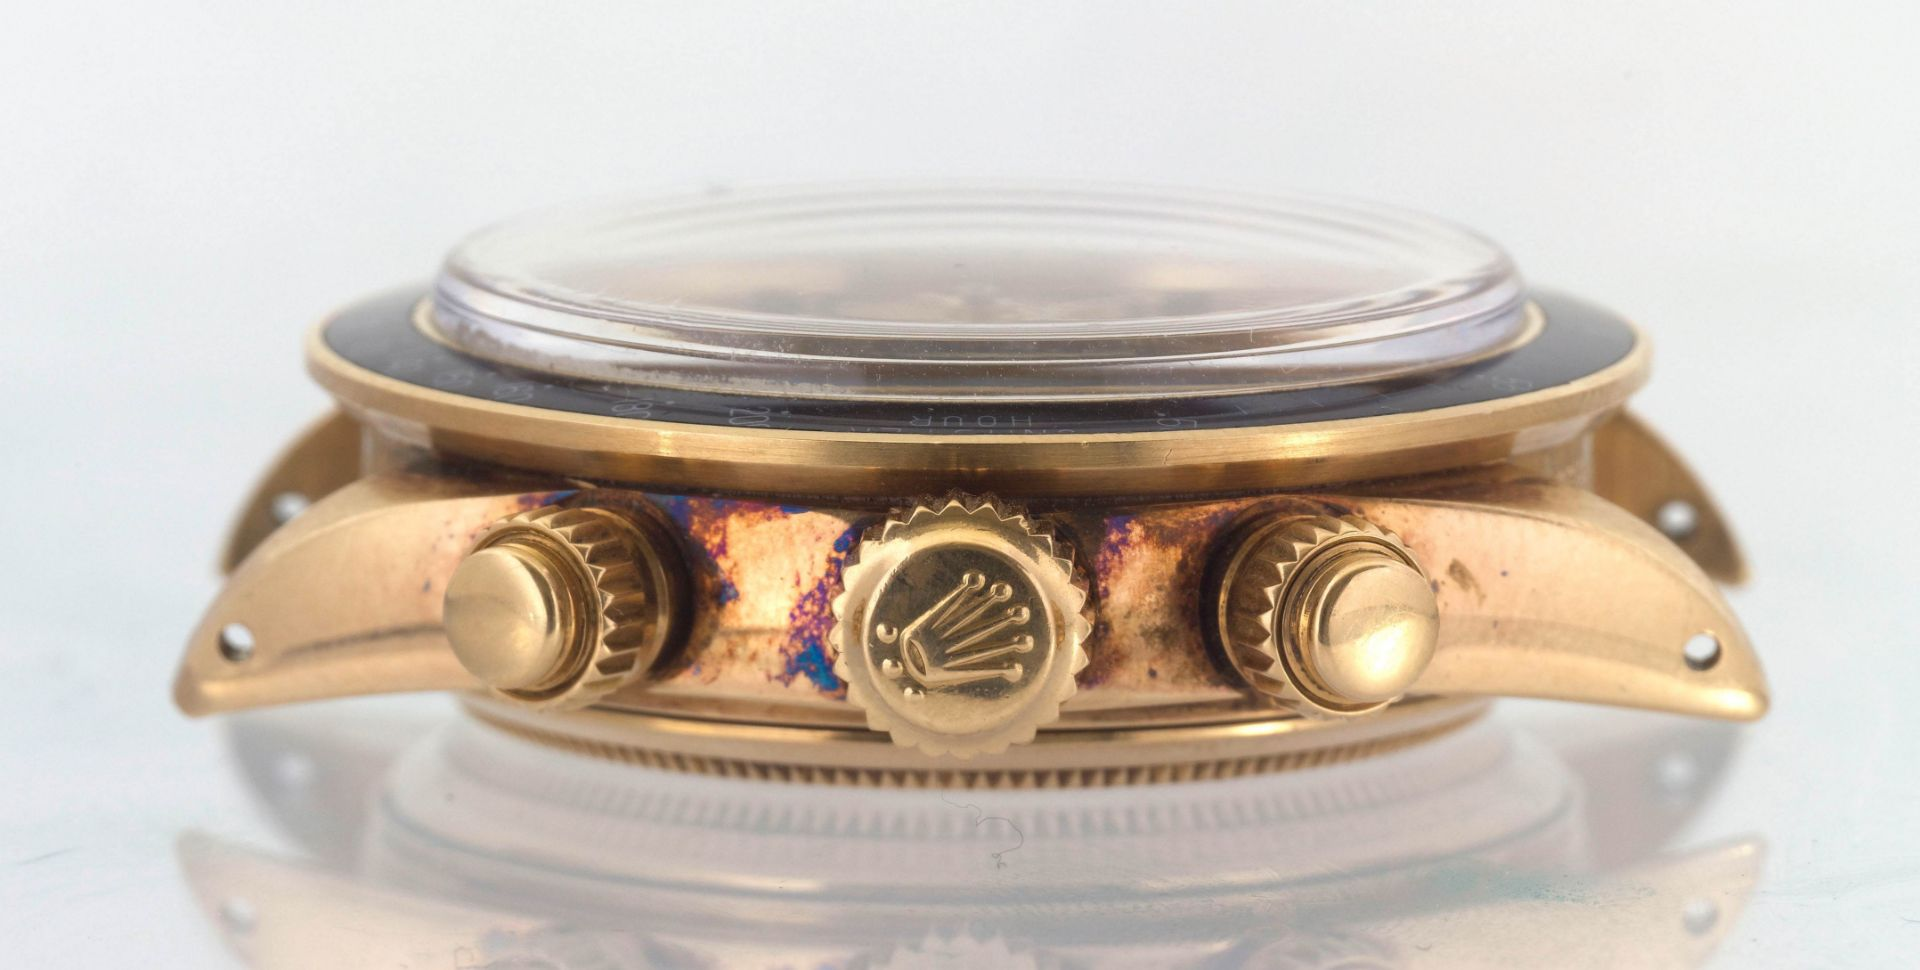 """Rolex, extremely rare cosmograph with original warranty certificate and """"Sigma"""" dial, 1987. - Image 3 of 9"""